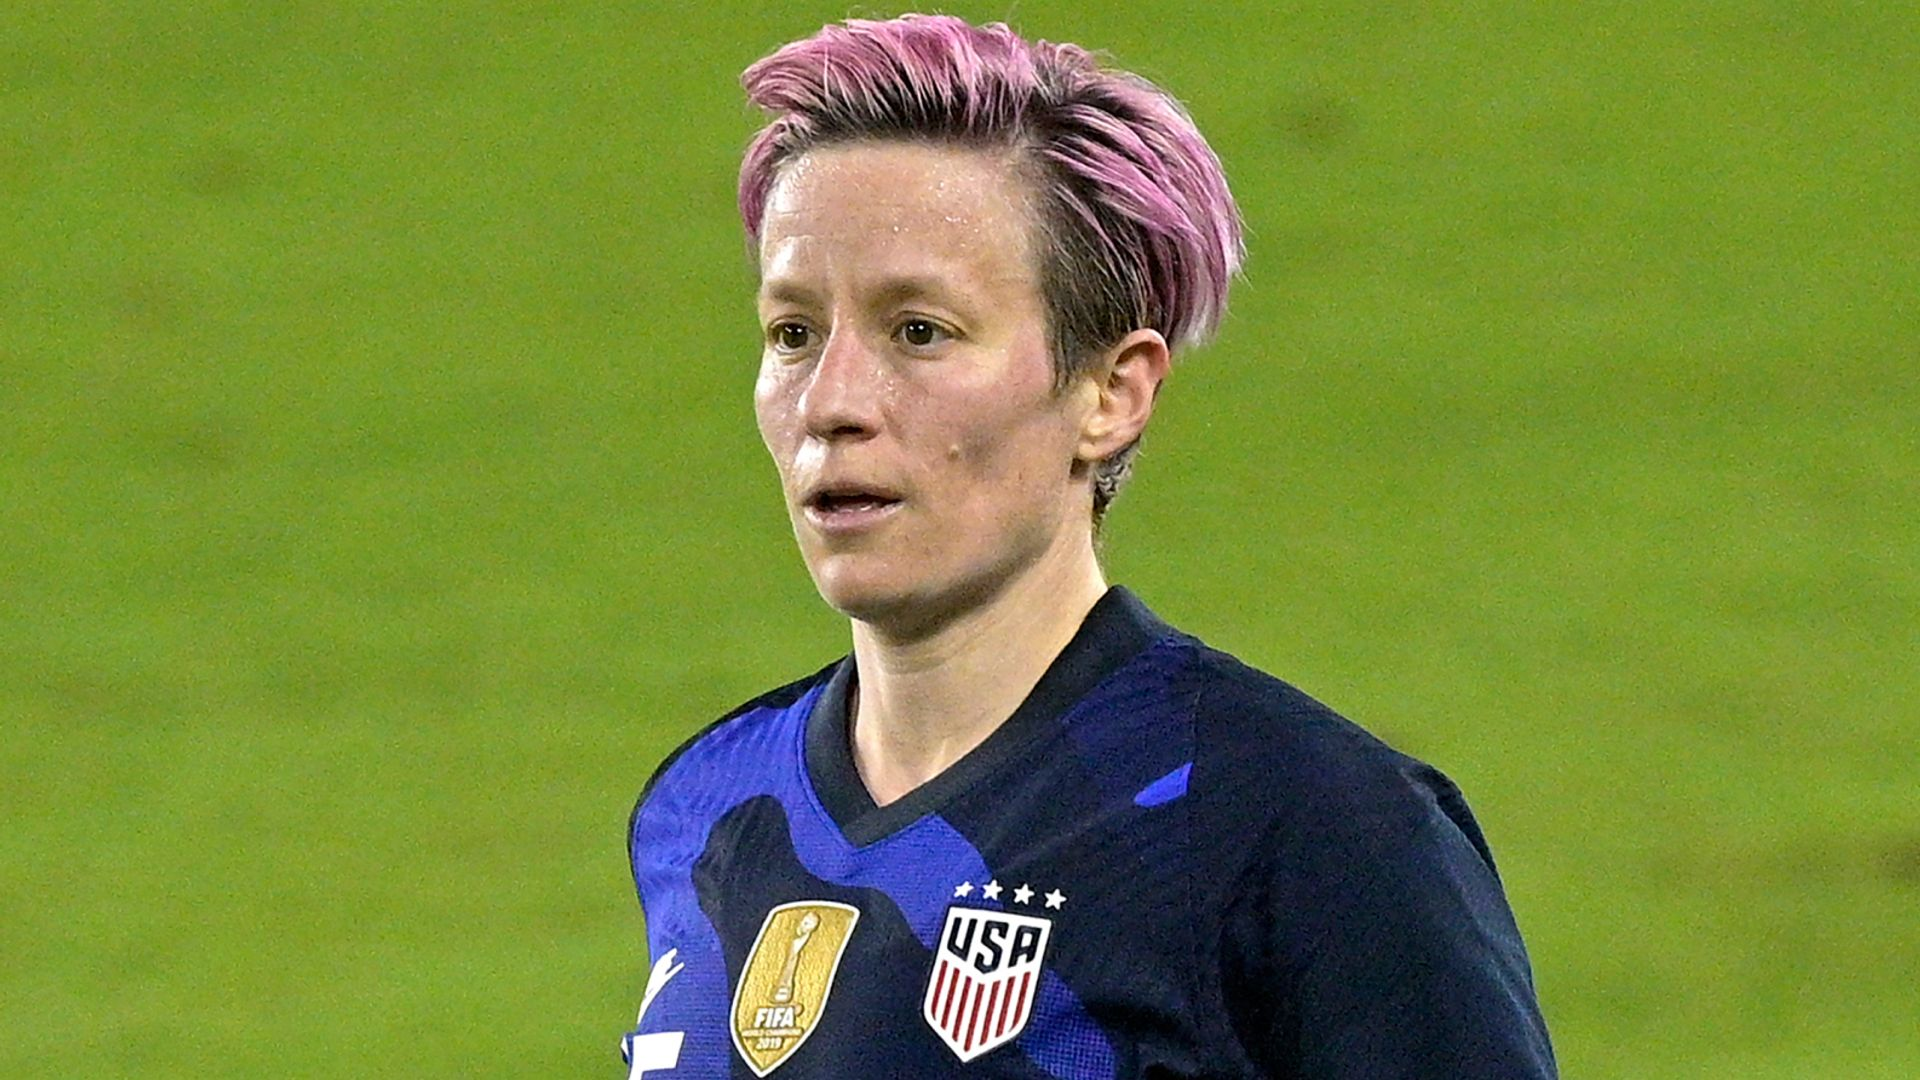 Rapinoe 'frustrated' by Green's equal pay remarks